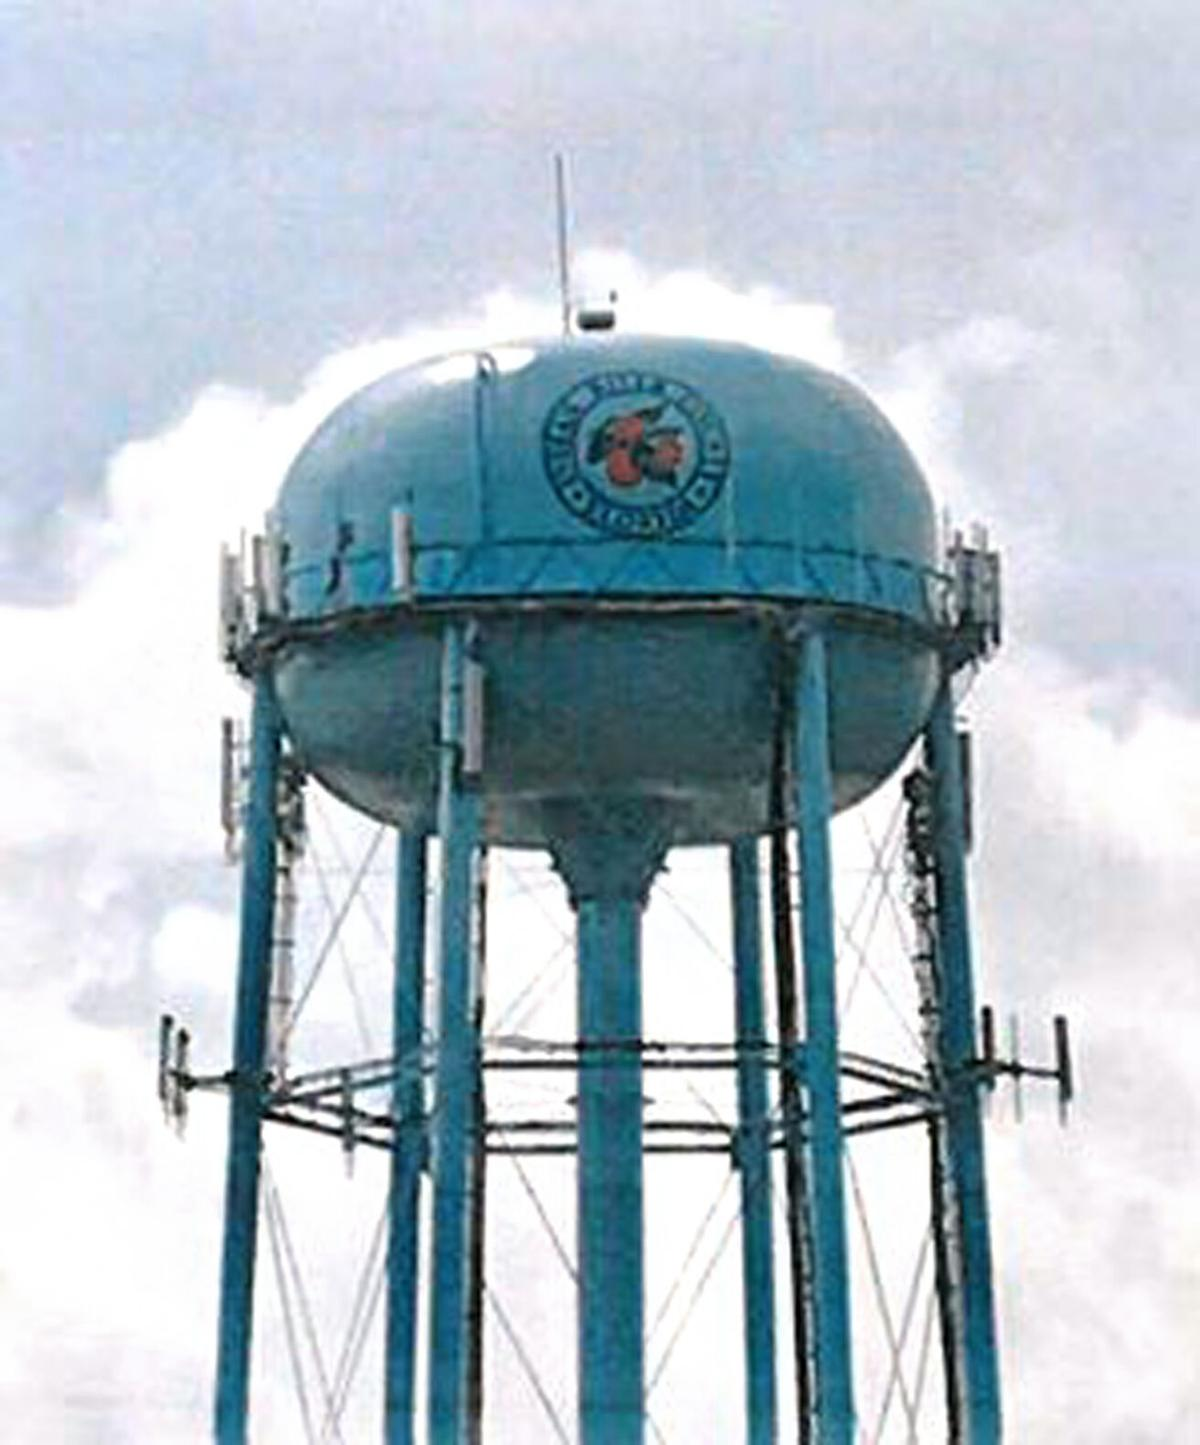 Gifford Water Tower